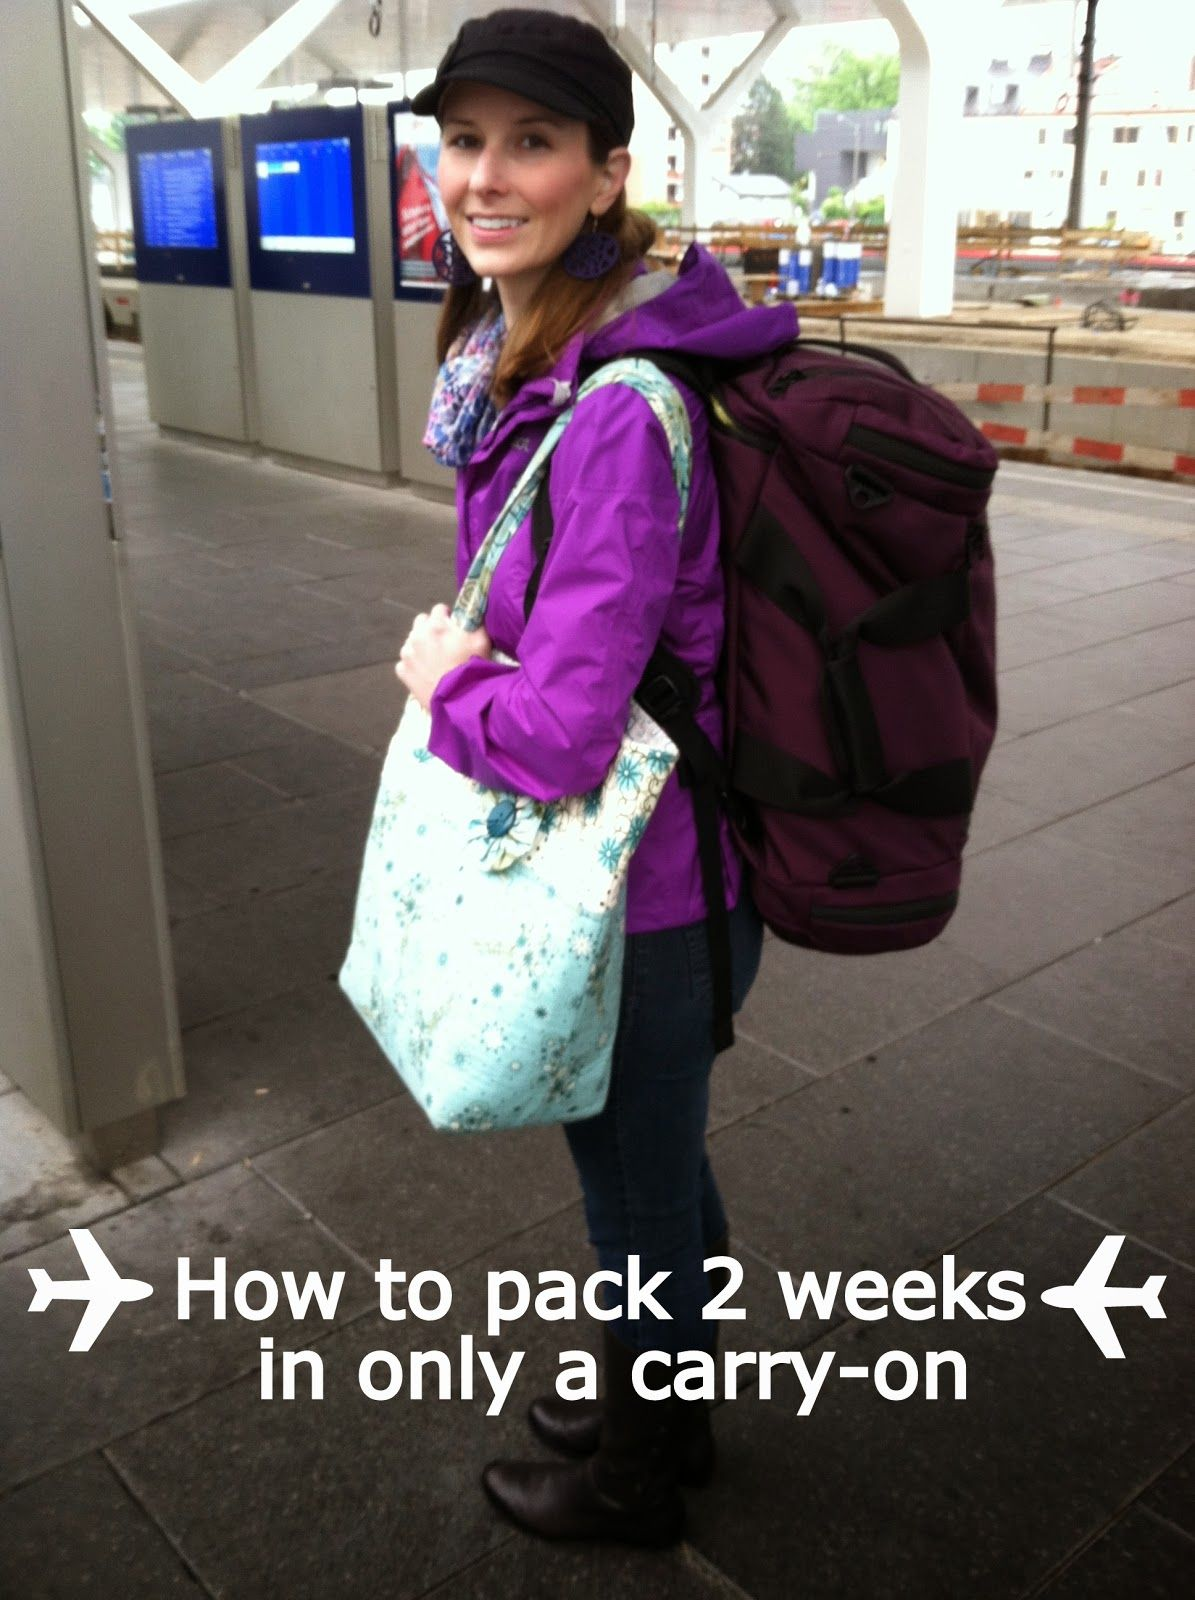 how to pack carry on for 2 weeks